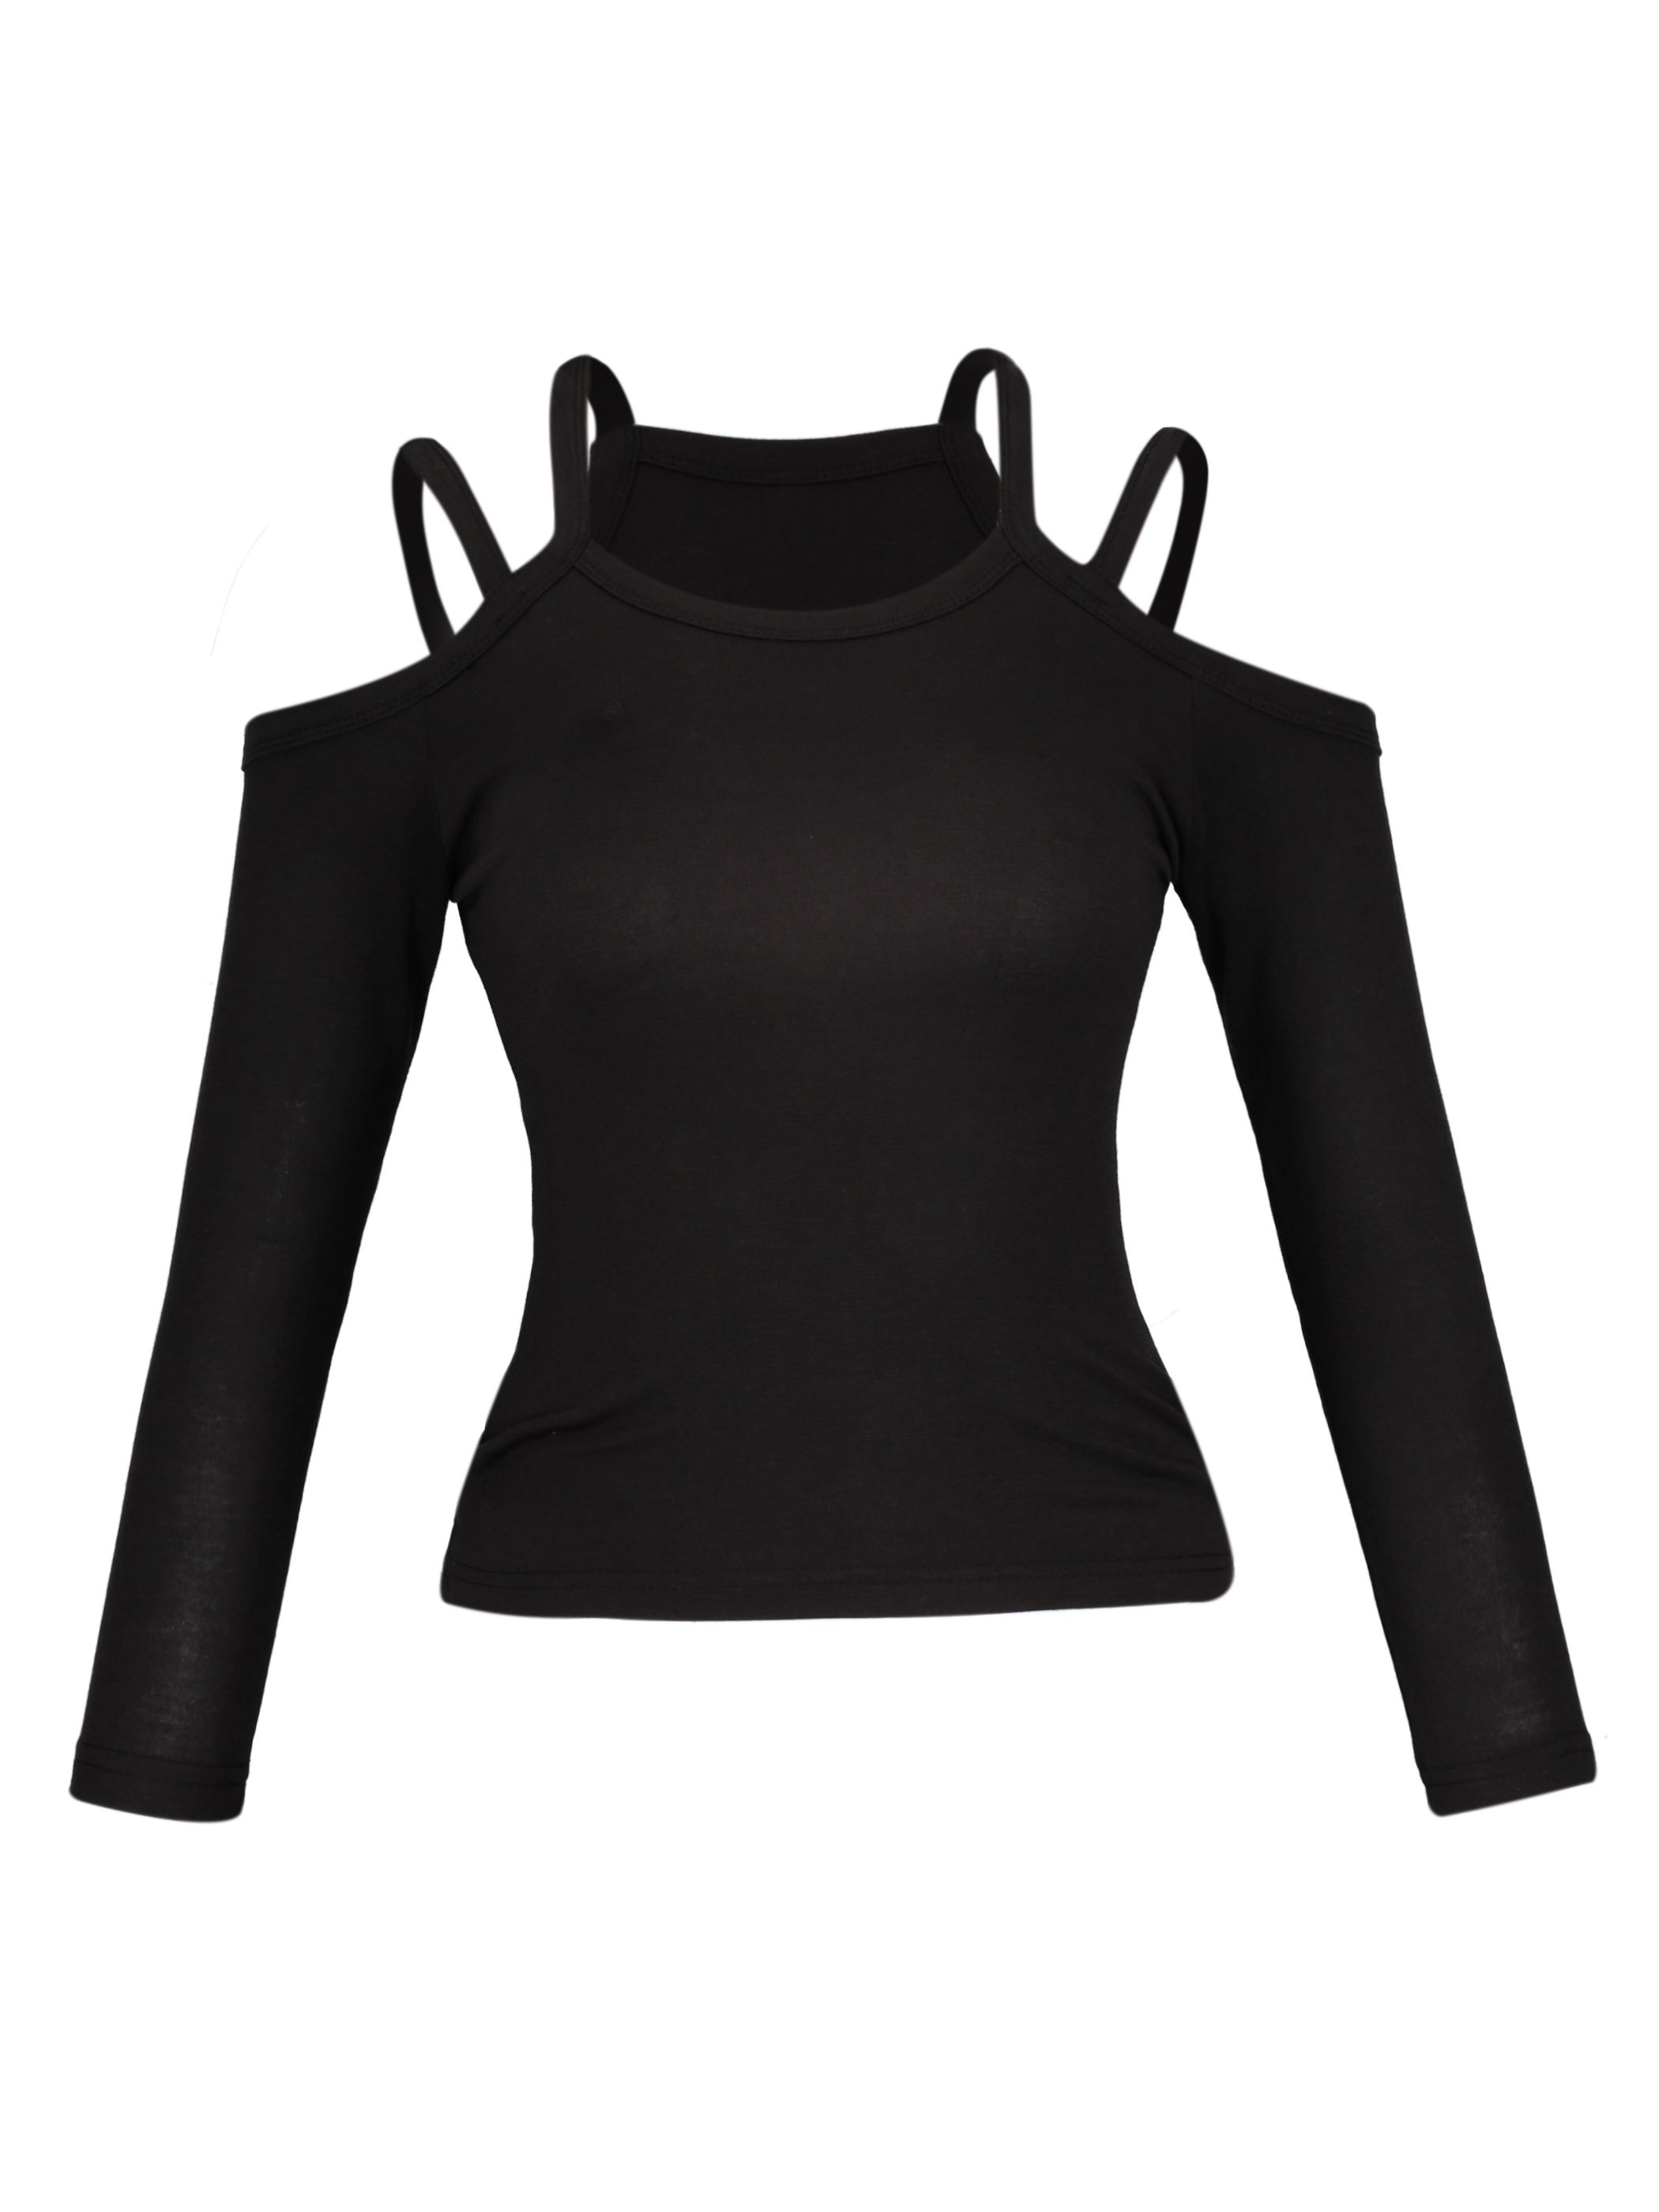 Goth Casual Tee <font><b>Shirts</b></font> Black Hollow Slim <font><b>Women</b></font> Spring Tops Tees Fashion <font><b>Sexy</b></font> Club Party Street Cool Preppy <font><b>Gothic</b></font> <font><b>Shirts</b></font> image